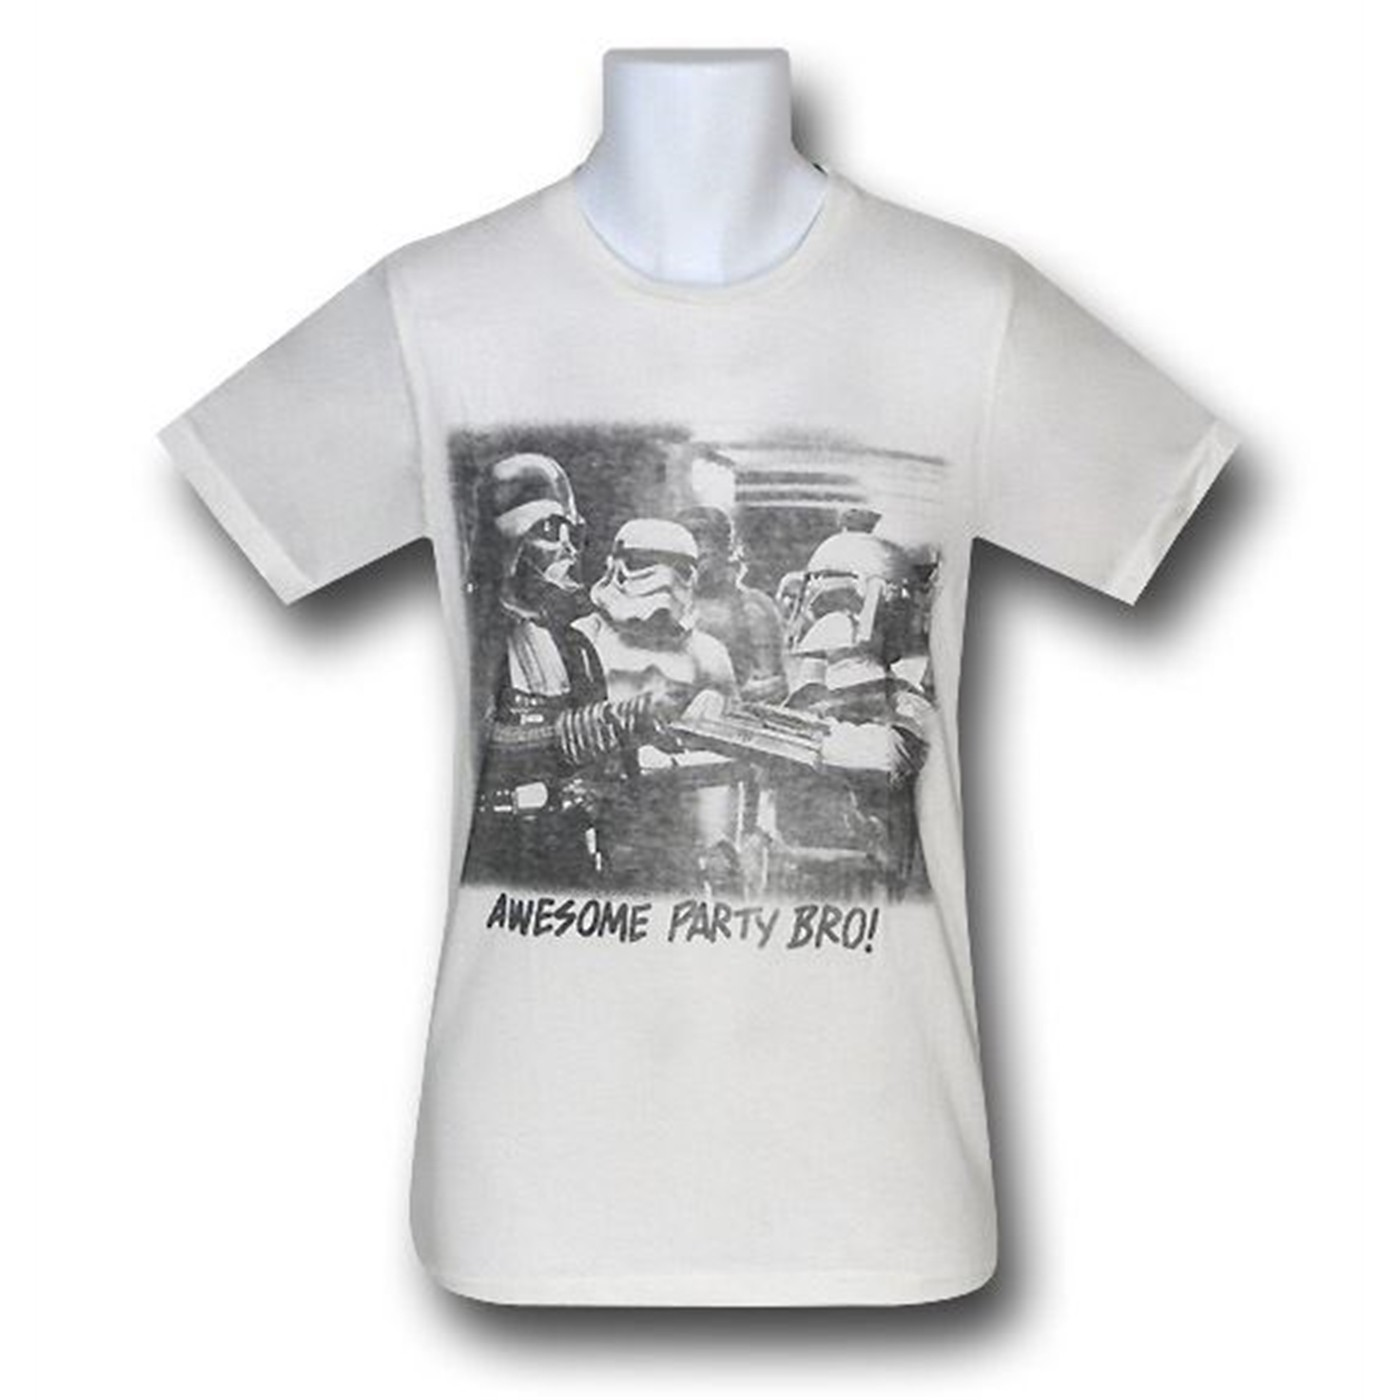 Star Wars Awesome Party Bro! Junk Food T-Shirt